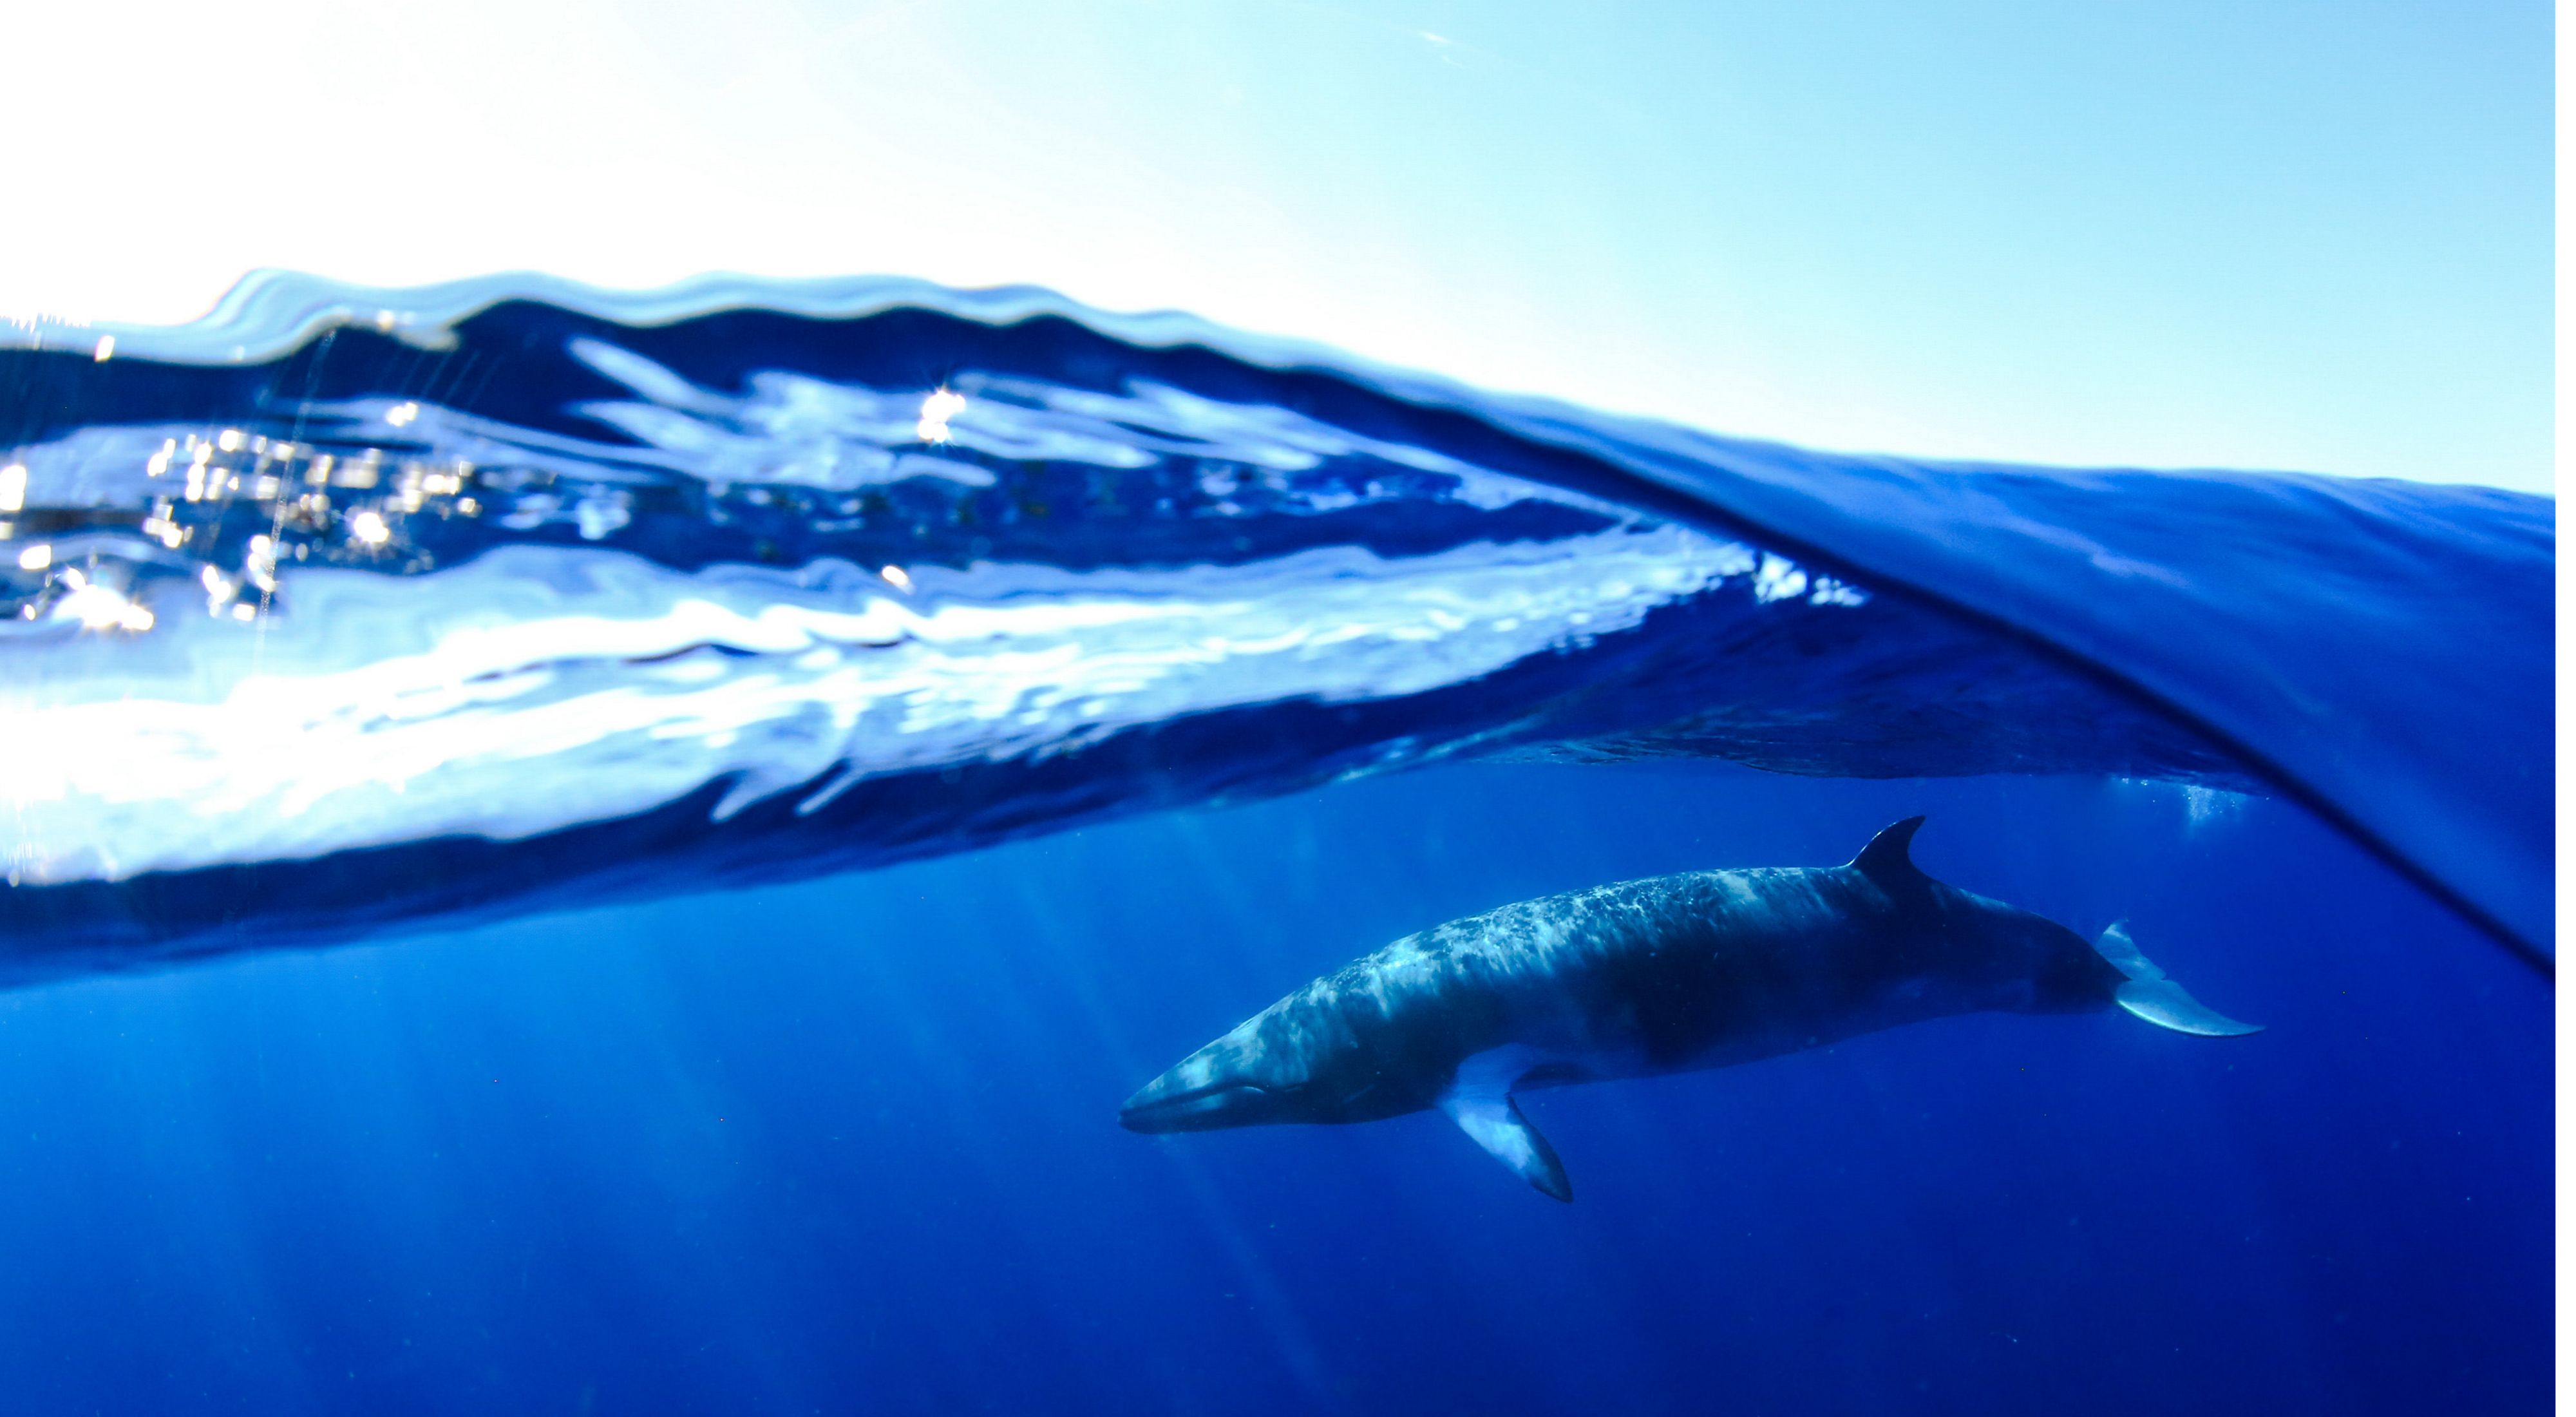 An encounter with a beautiful, curious Minke Whale in Ningaloo Reef, Coral Bay, WA, Australia.